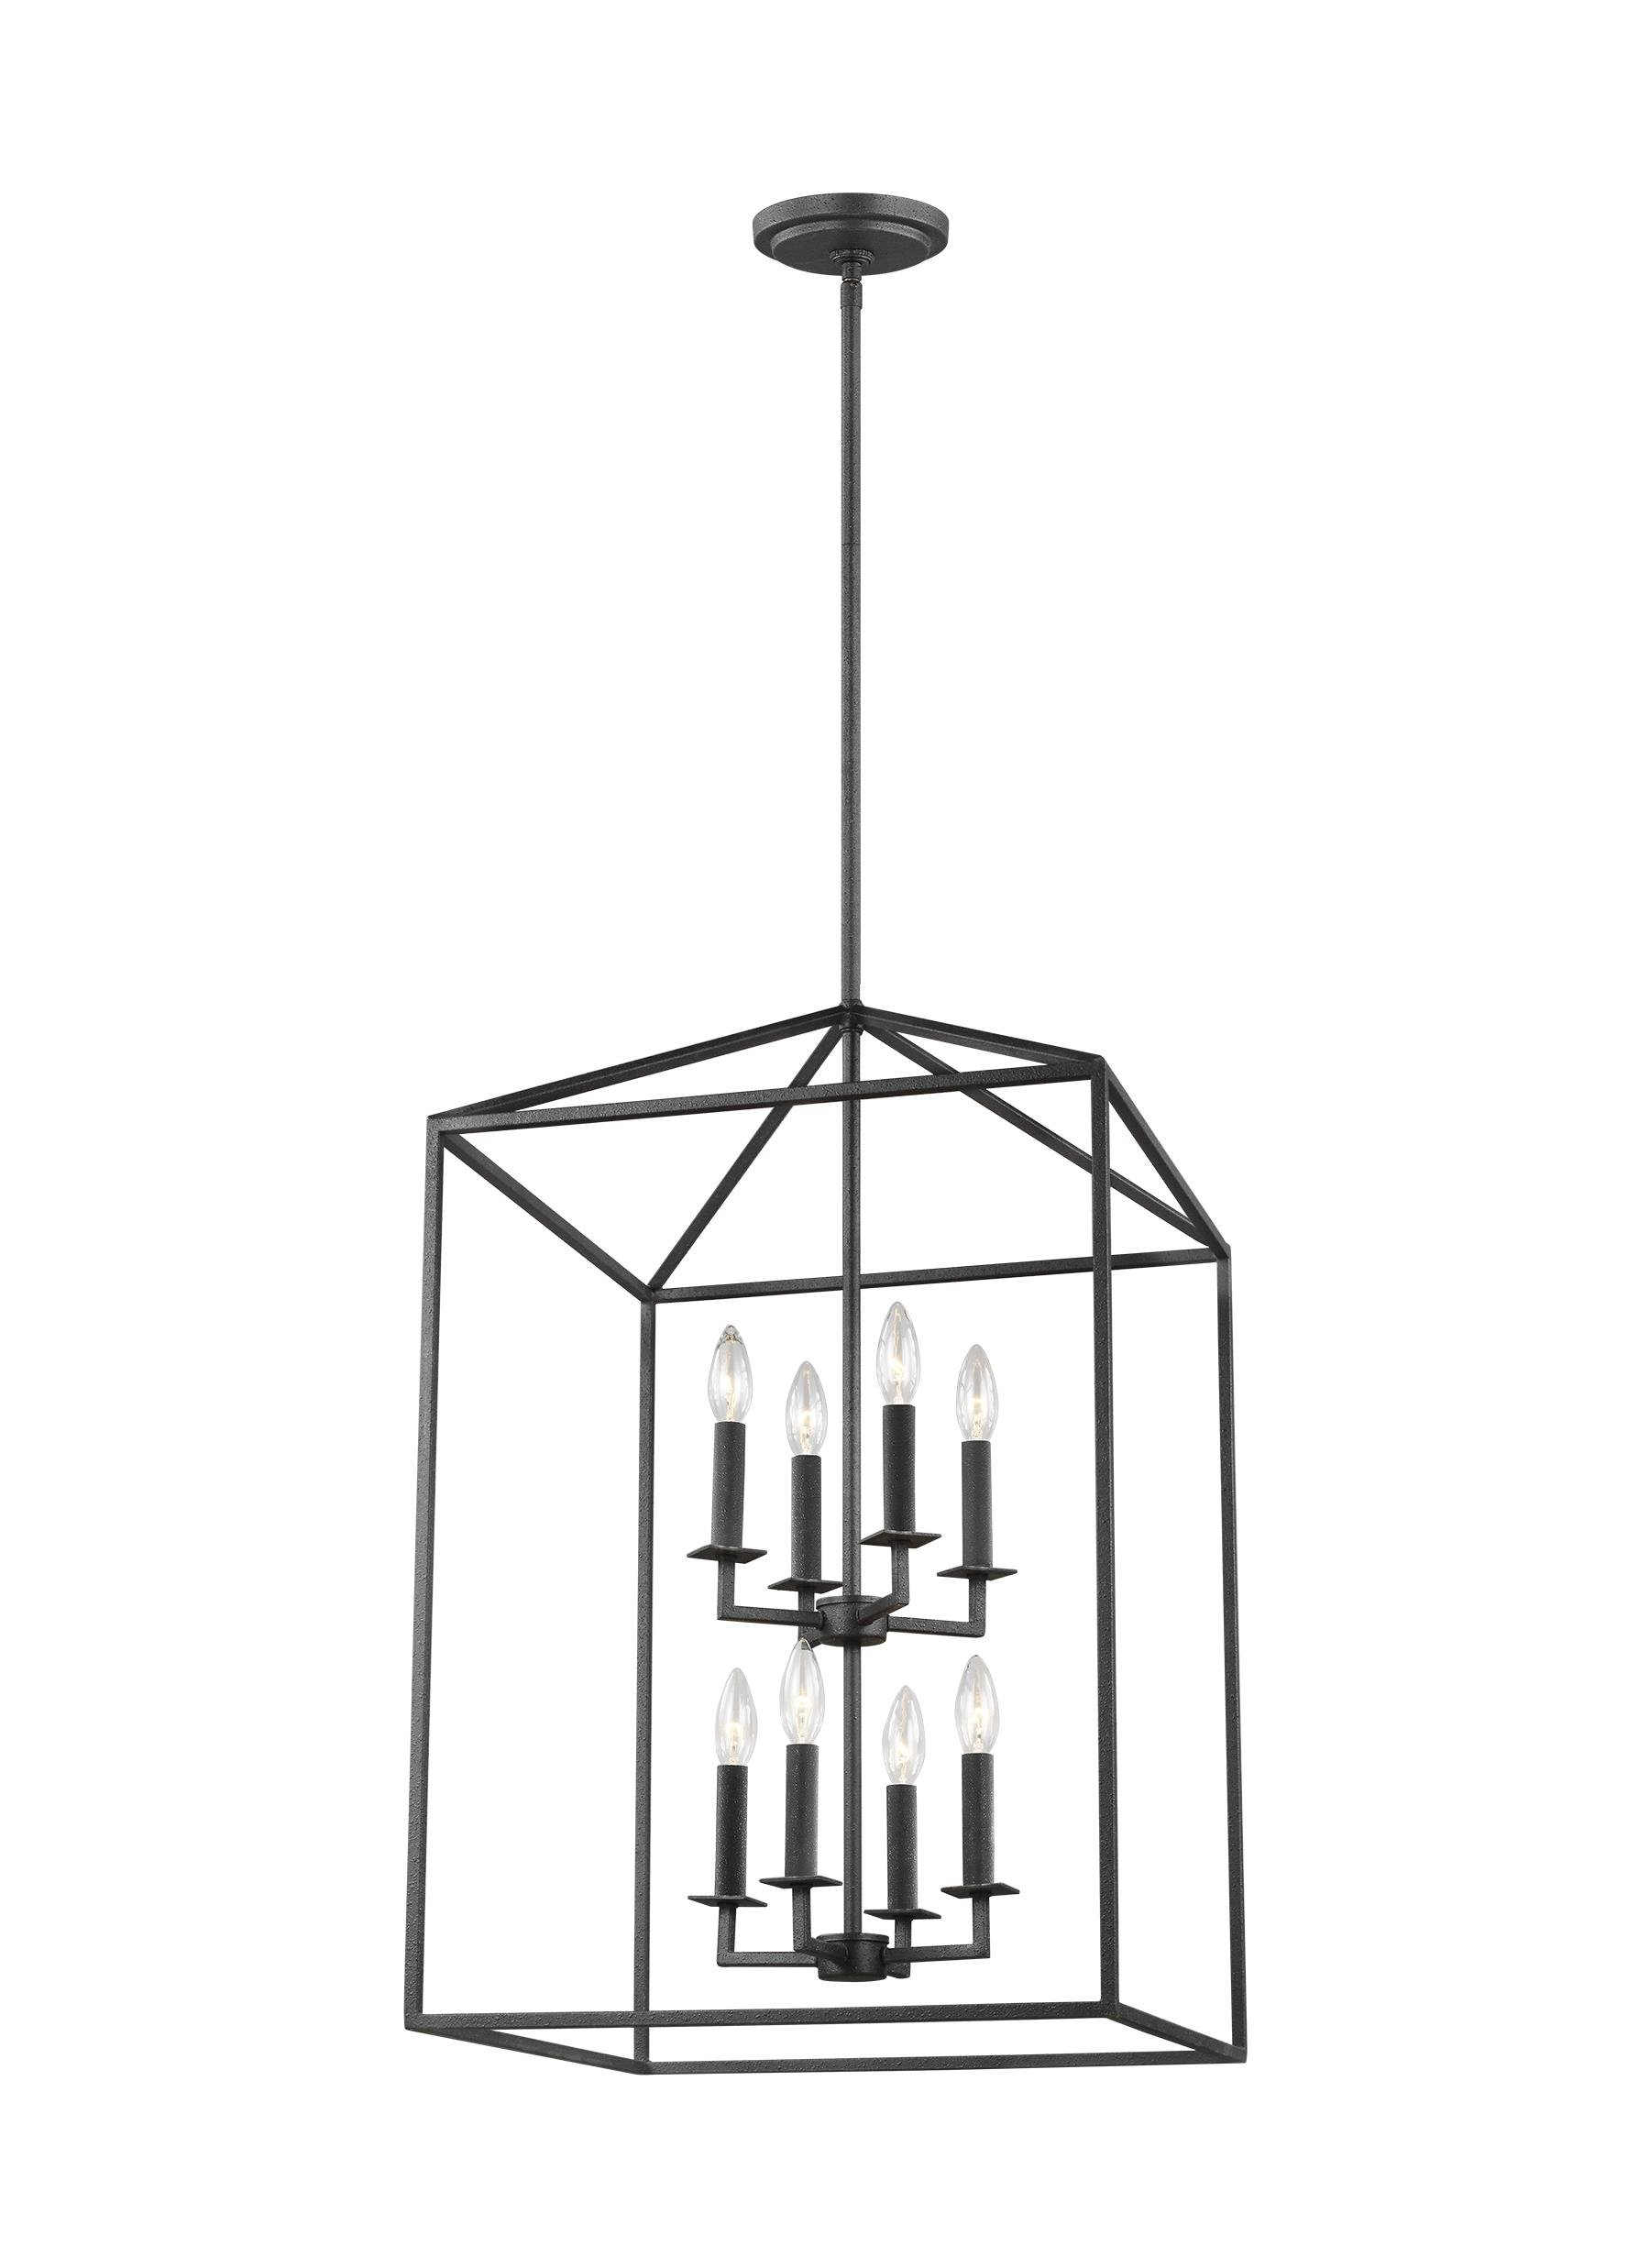 Well Liked Odie 4 Light Lantern Square Pendants Regarding Odie 8 Light Lantern Square / Rectangle Pendant (View 8 of 25)